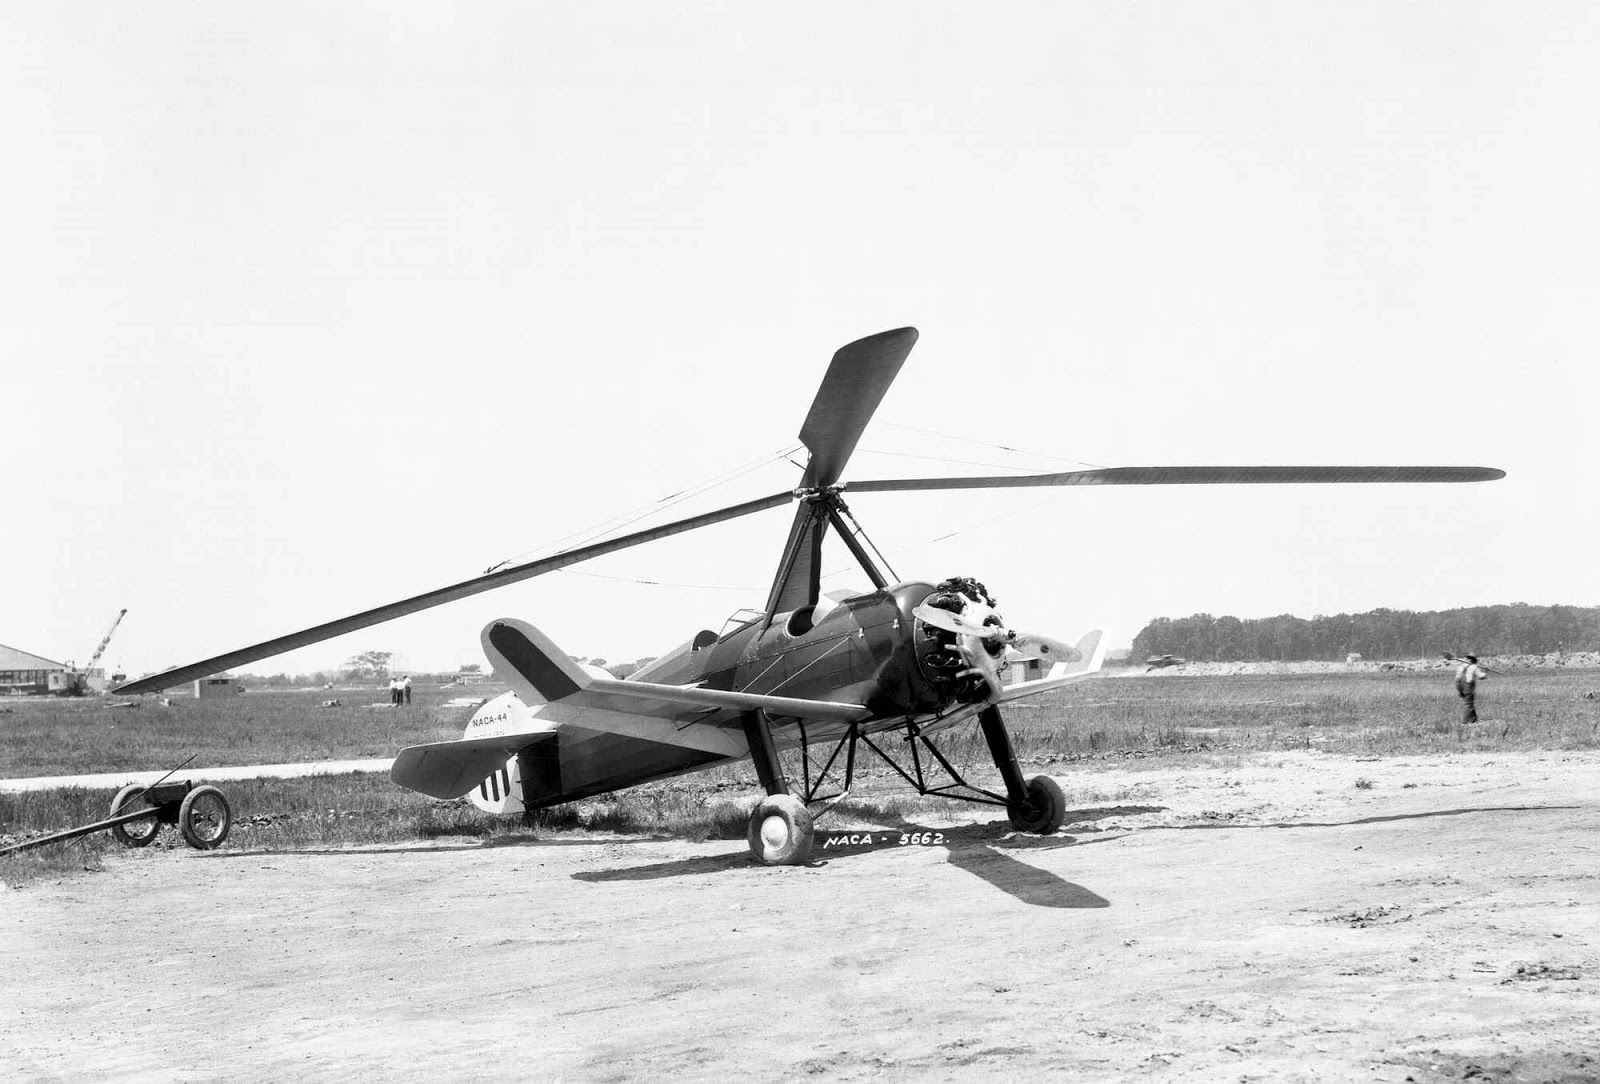 Autogyros are the true predecessors of flying cars and Harold F. Pitcairn's PCA-2 was sold on the mass market. It was the first rotary-wing aircraft to achieve type certification in the United States, and in one promotional stunt landed on the White House lawn during Herbert Hover's presidency. 1923.